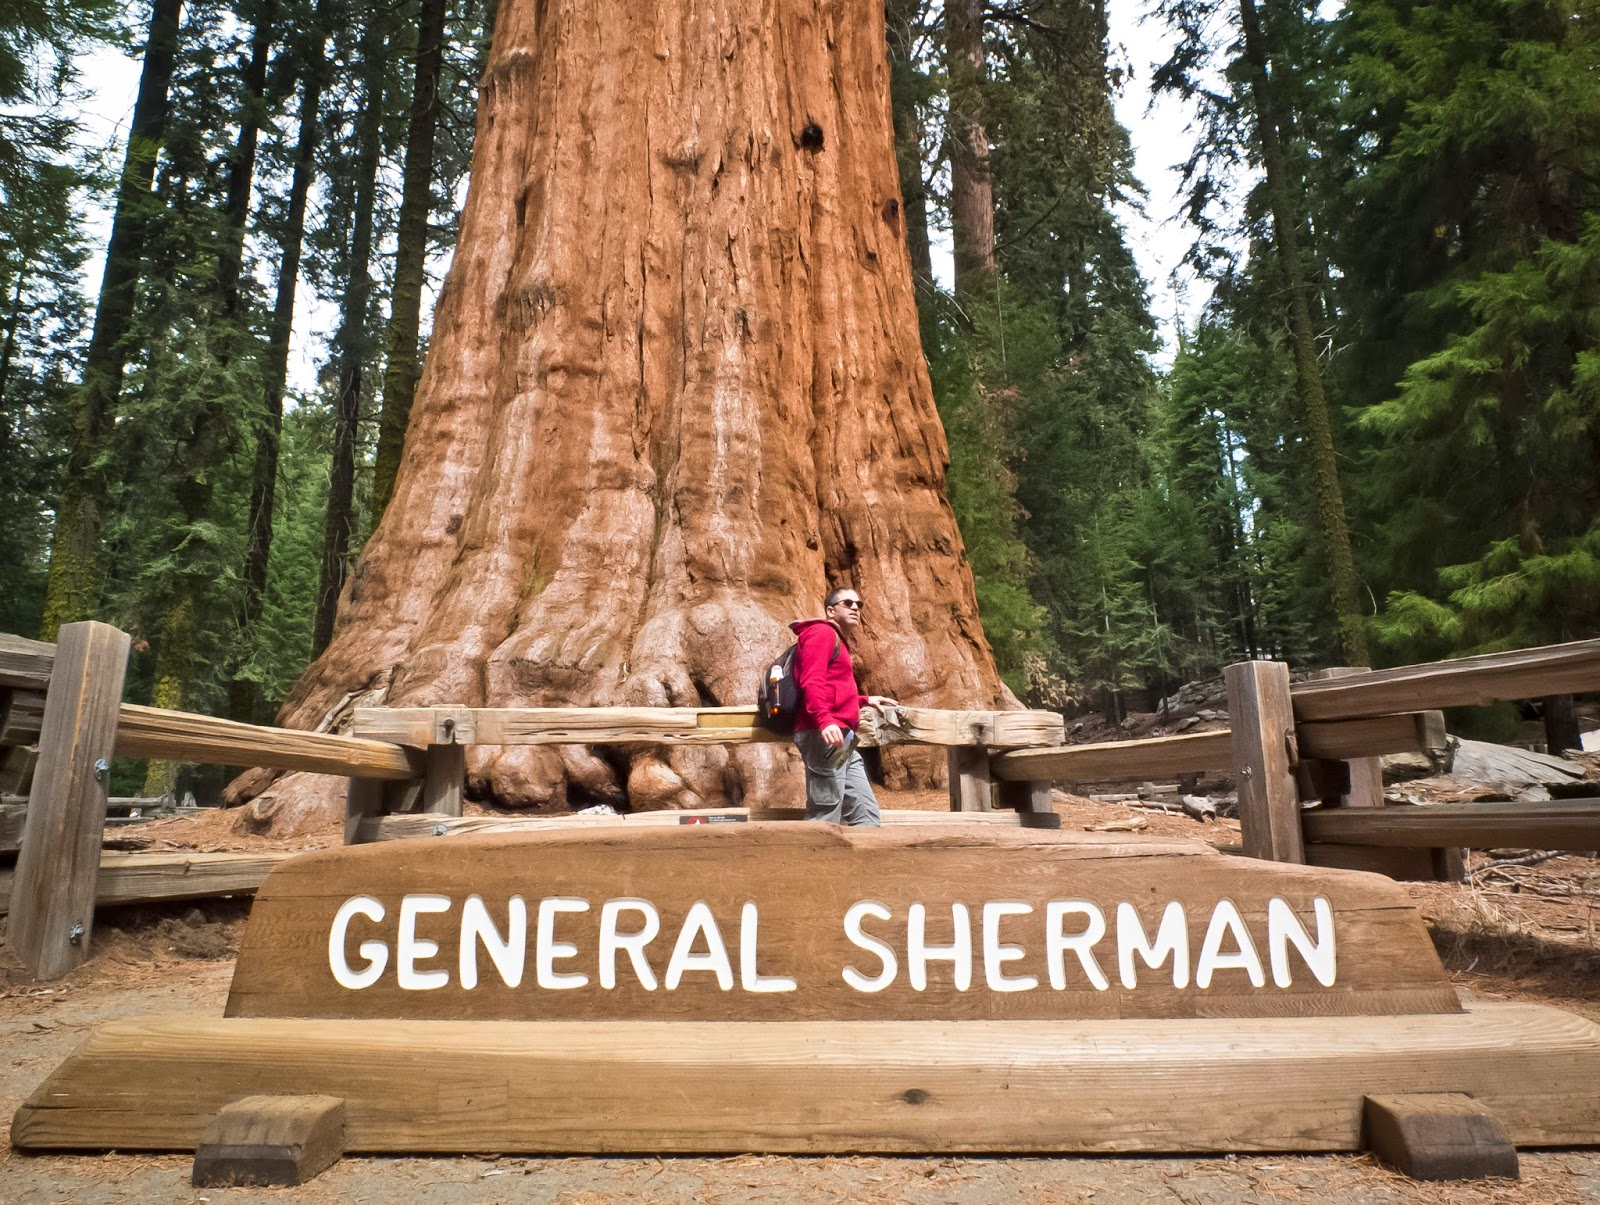 California, Crannell Creek Giant, Earth, General Sherman, Giganteum, Highest Tree, Largest Tree, Living Tree, News, Oldest Tree, Sequoiadendron, Tallest Tree, Tress, Widest Tree, World  Largest Tree,